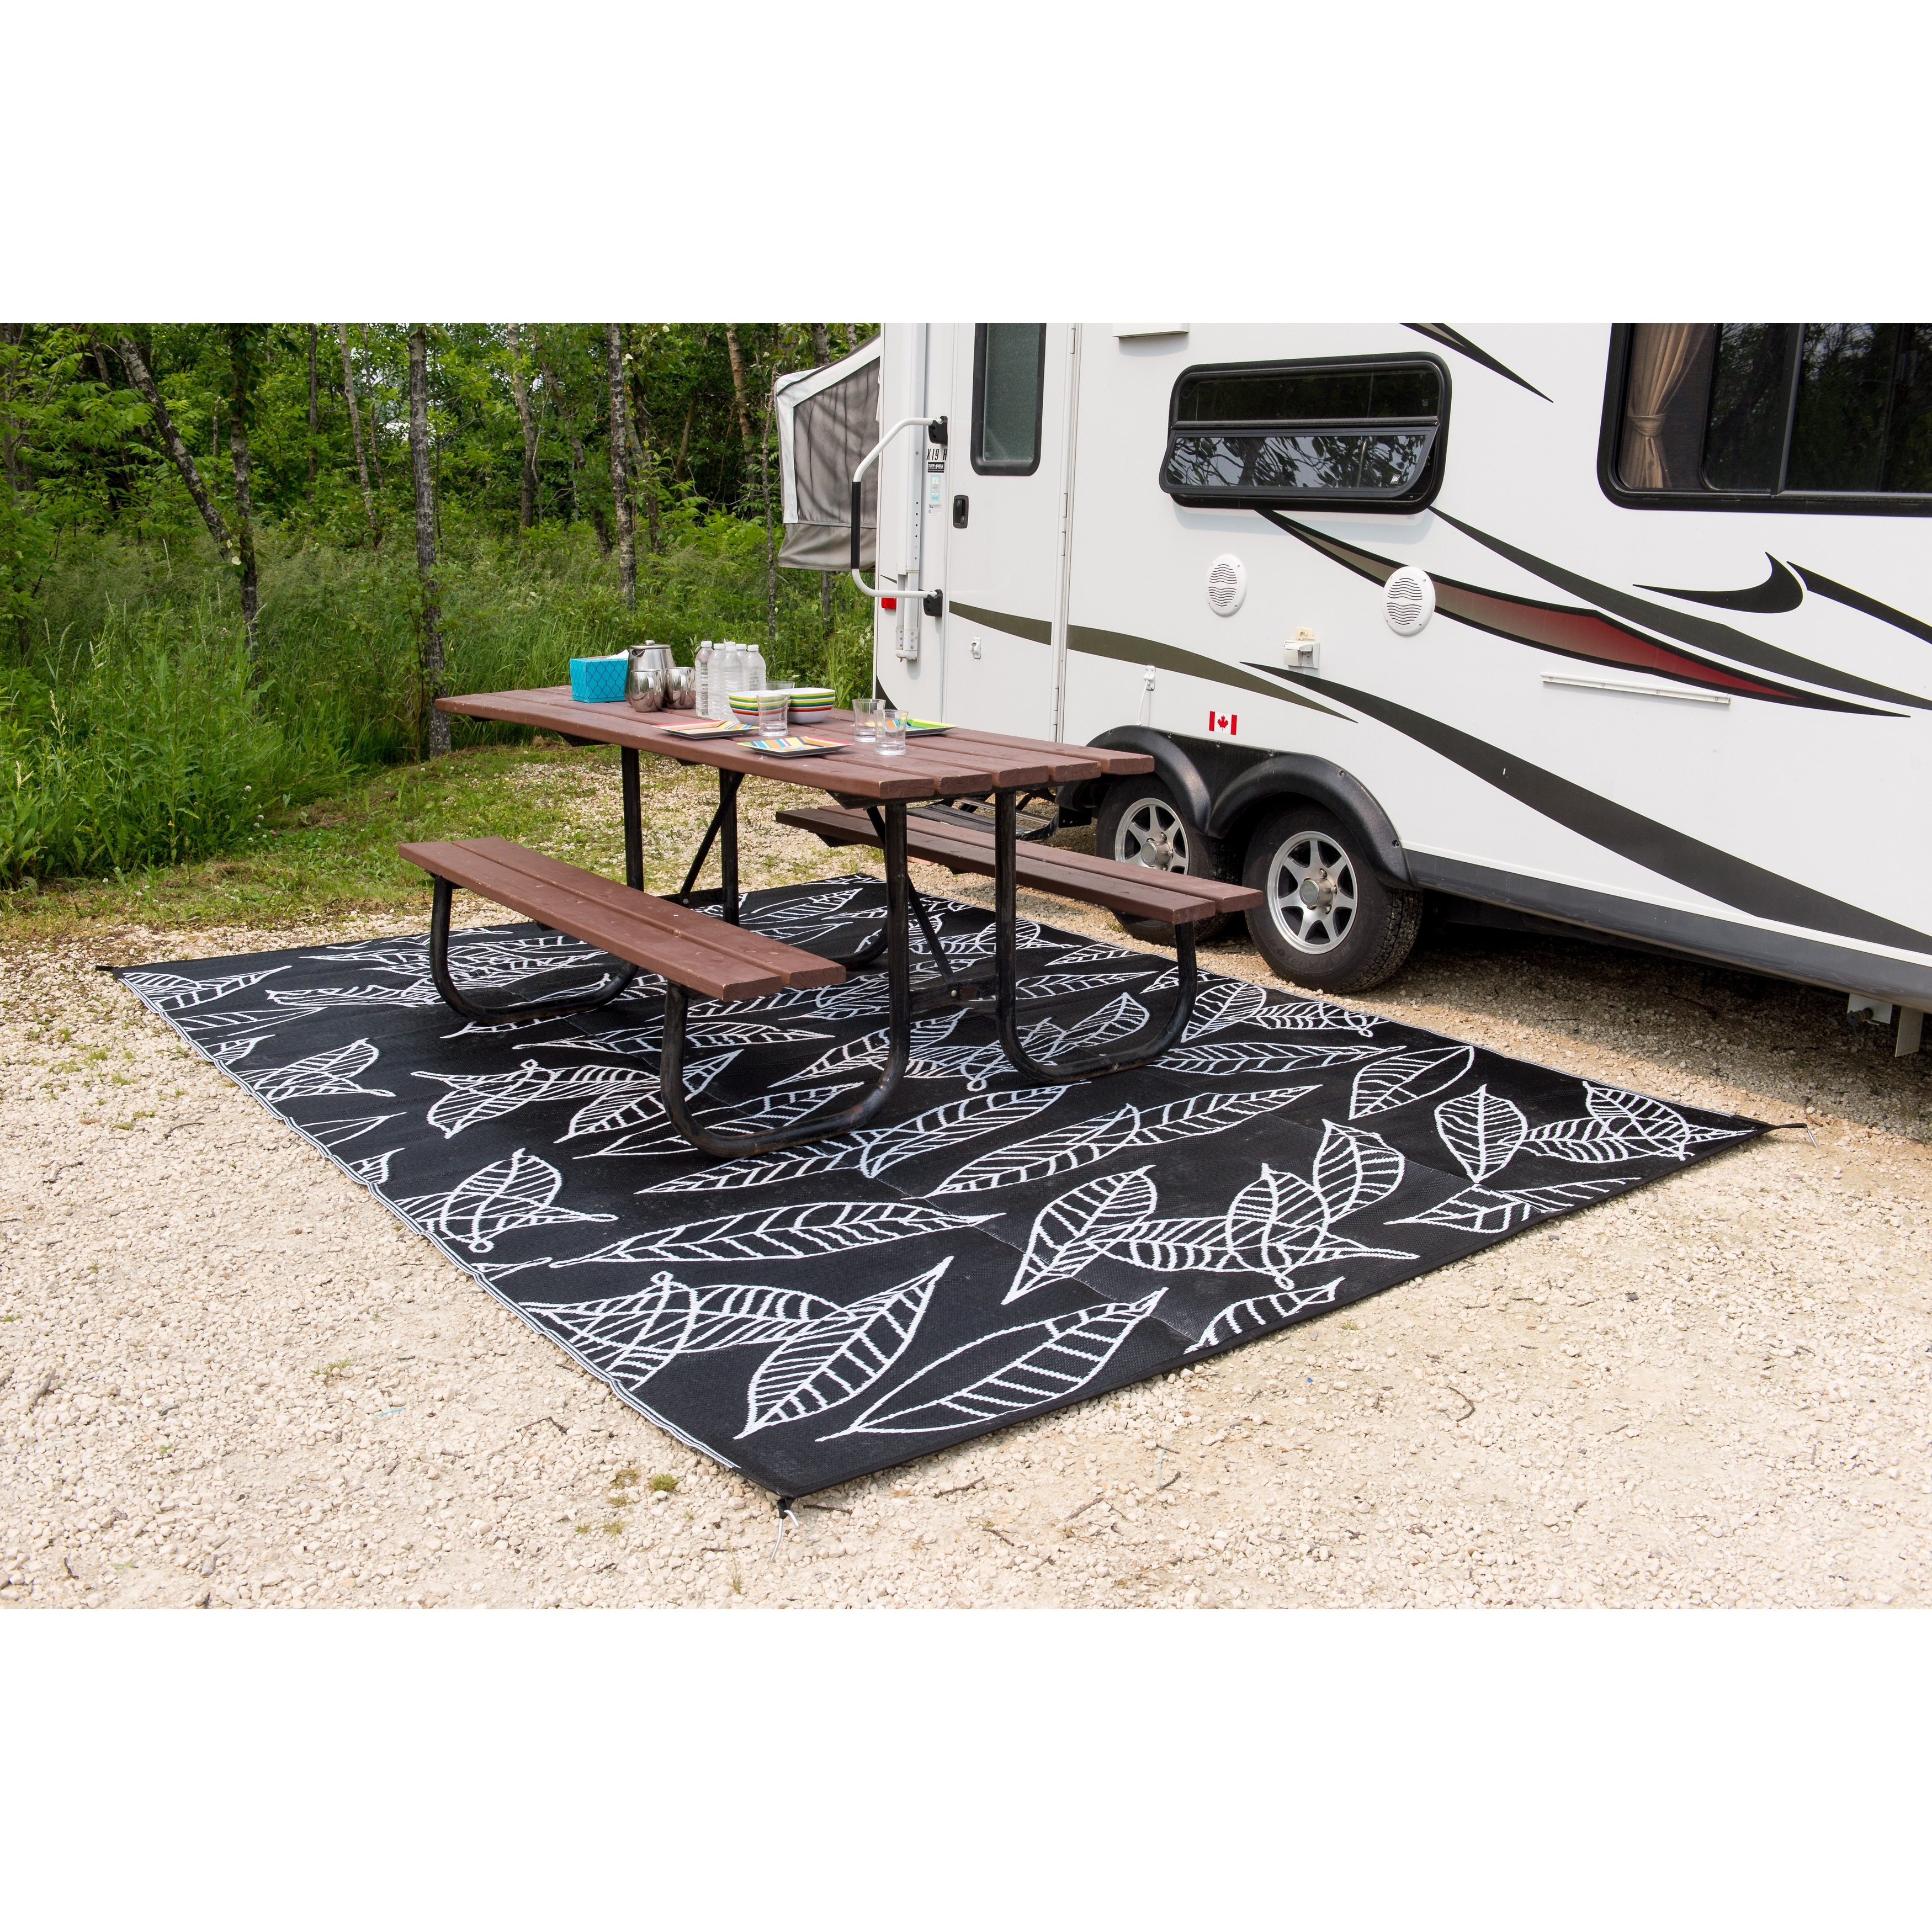 acd8dee939fd Shop b.b.begonia Outdoor/ RV/ Camping/Patio Mat-Arctic Black/ White  Reversible Area Rug - 8' x 20' - Free Shipping Today - Overstock - 9979711